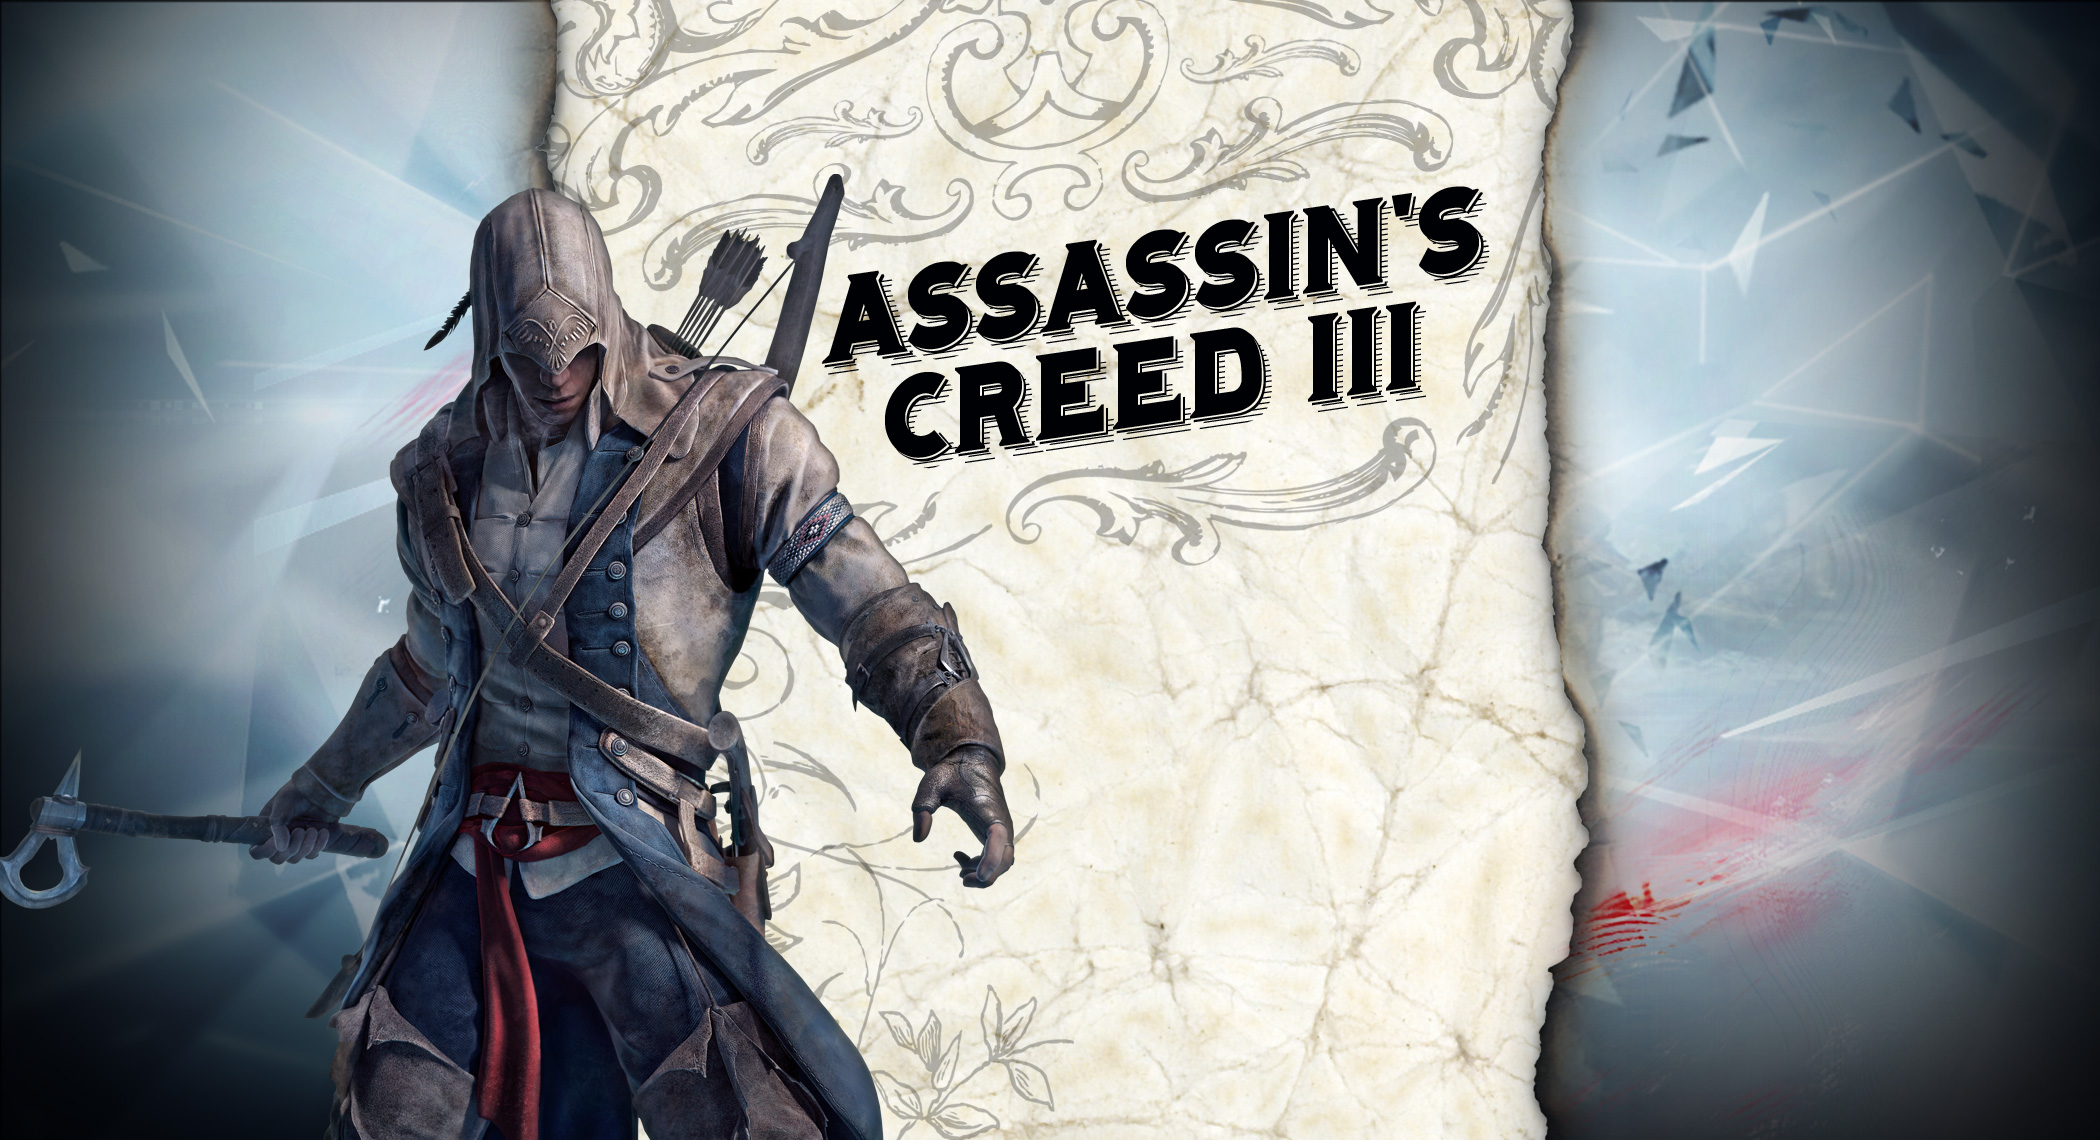 insanecyclone games more probably game thats killing much arkham city with answer found within thing pretty seek playing through creed played wrong pitcairn assassins this assassinate